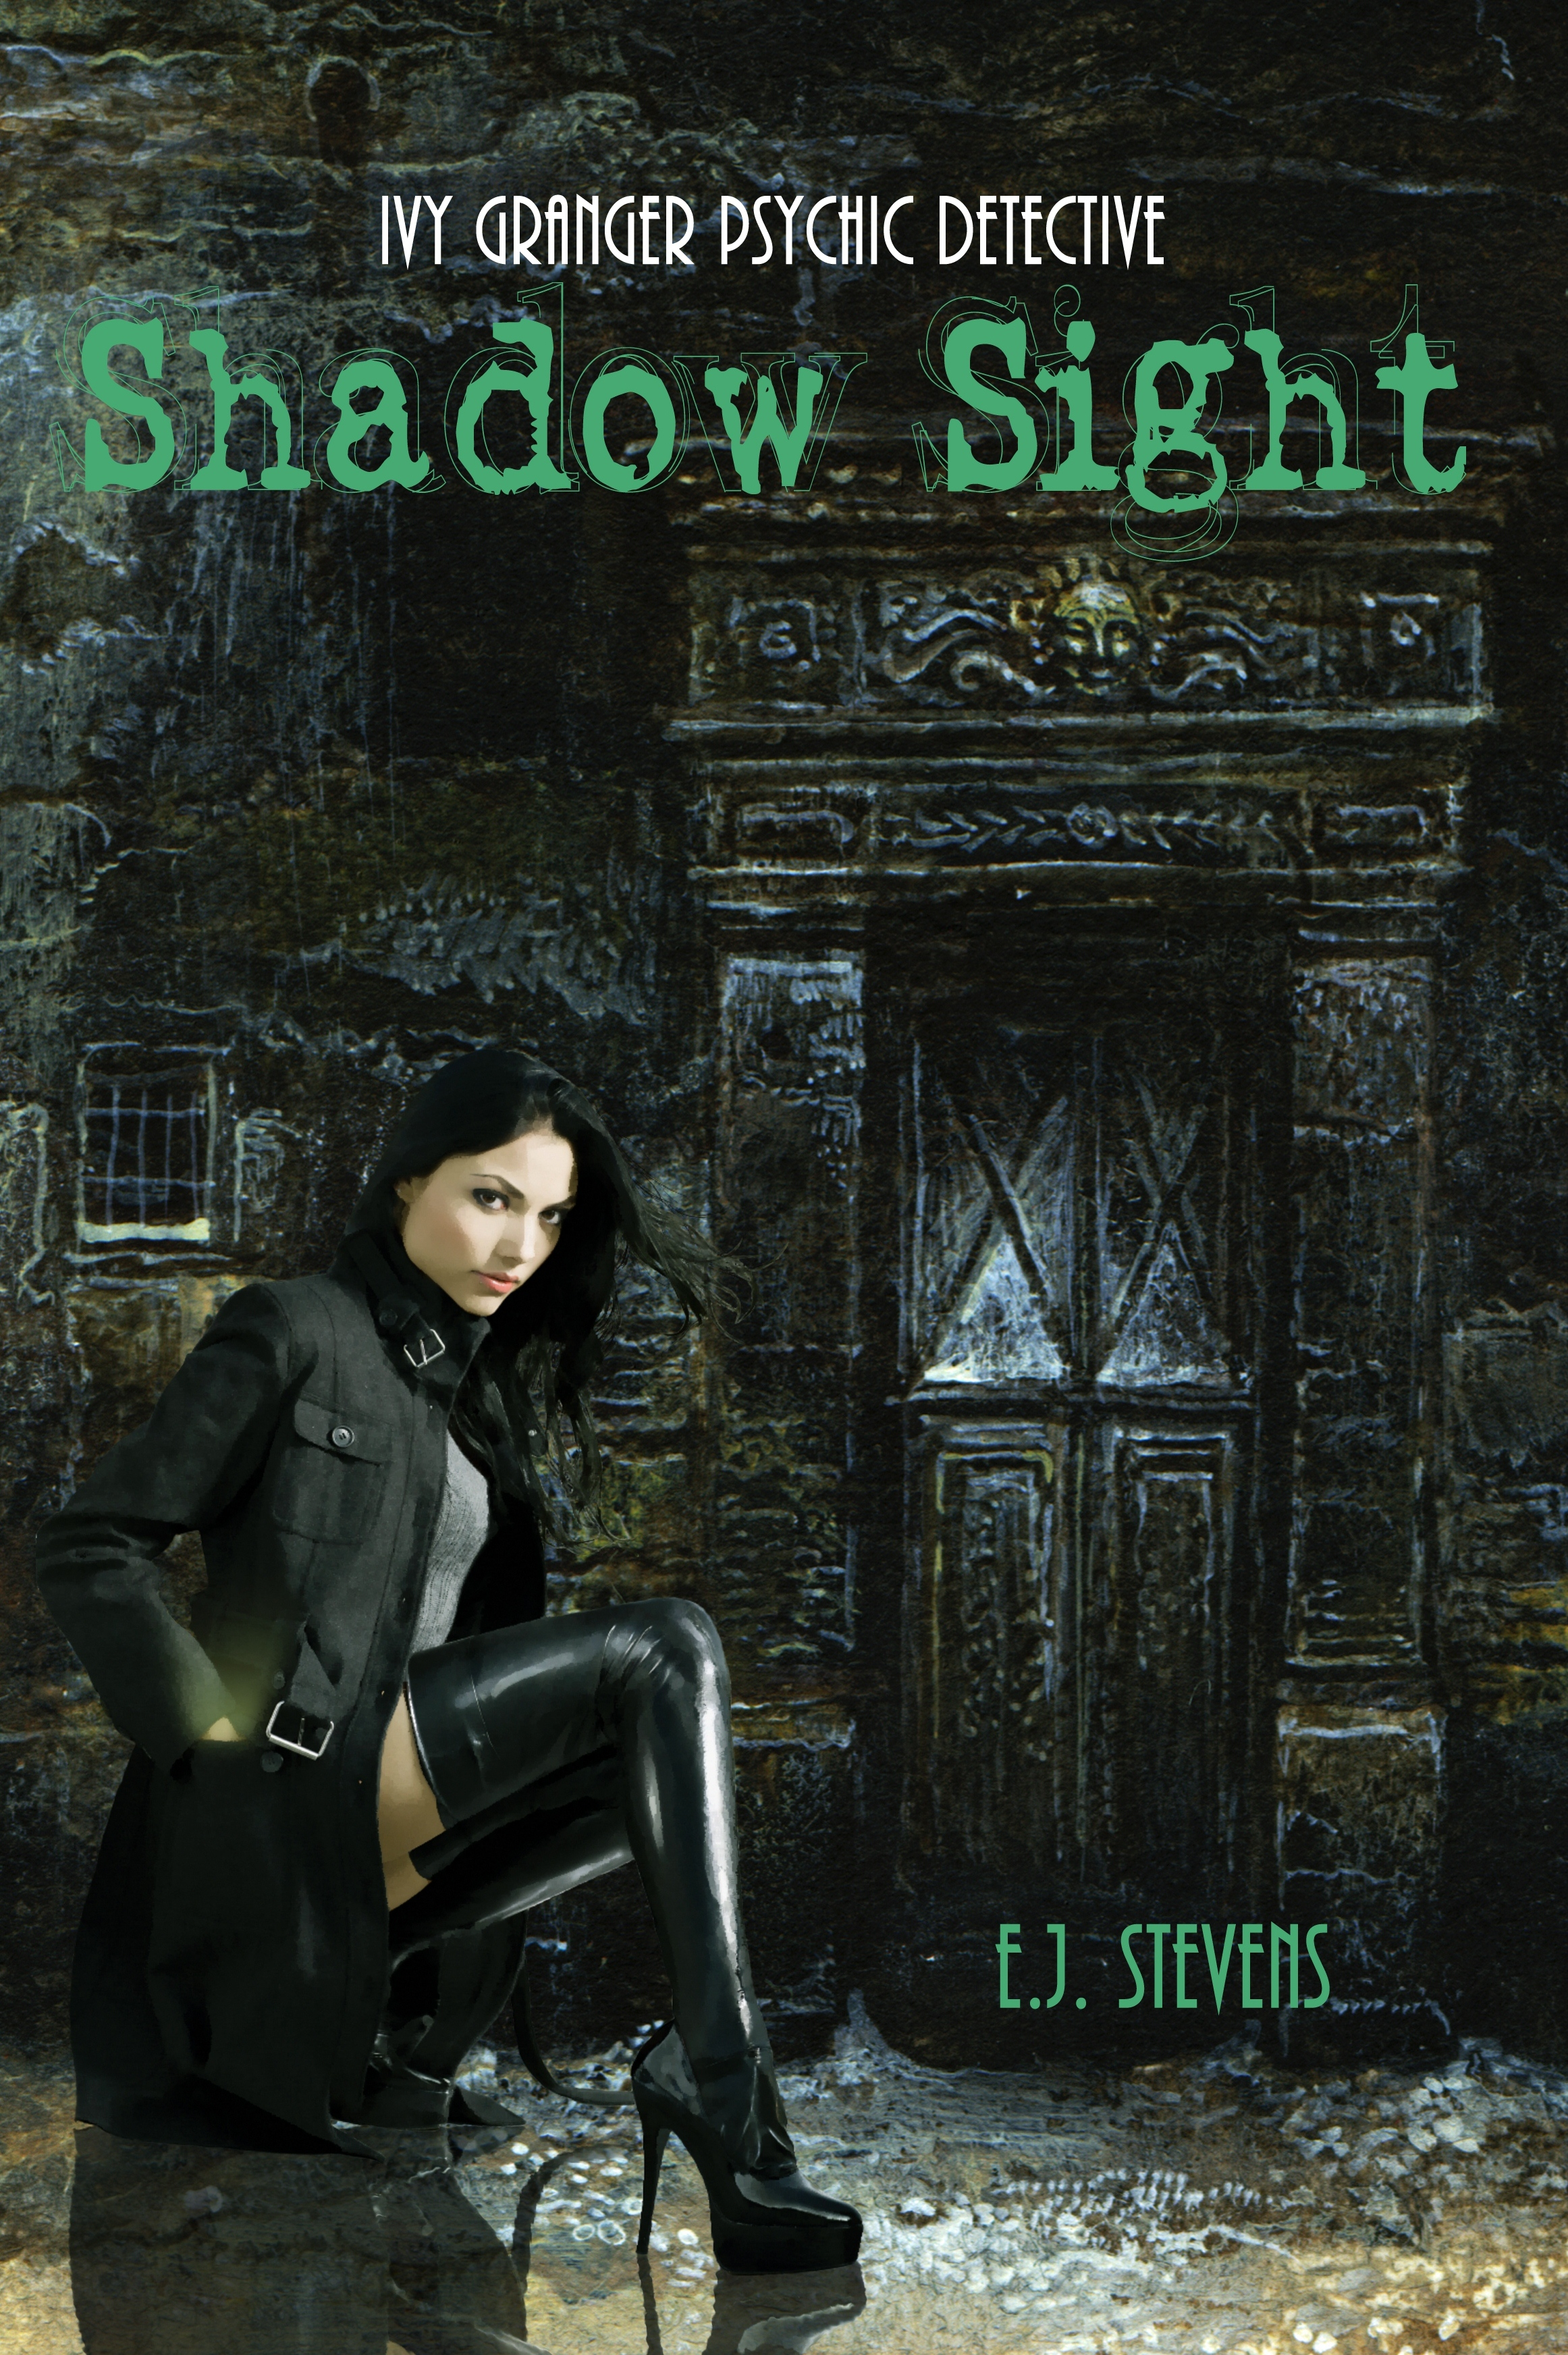 Shadow sight (ivy granger, psychic detective #1)